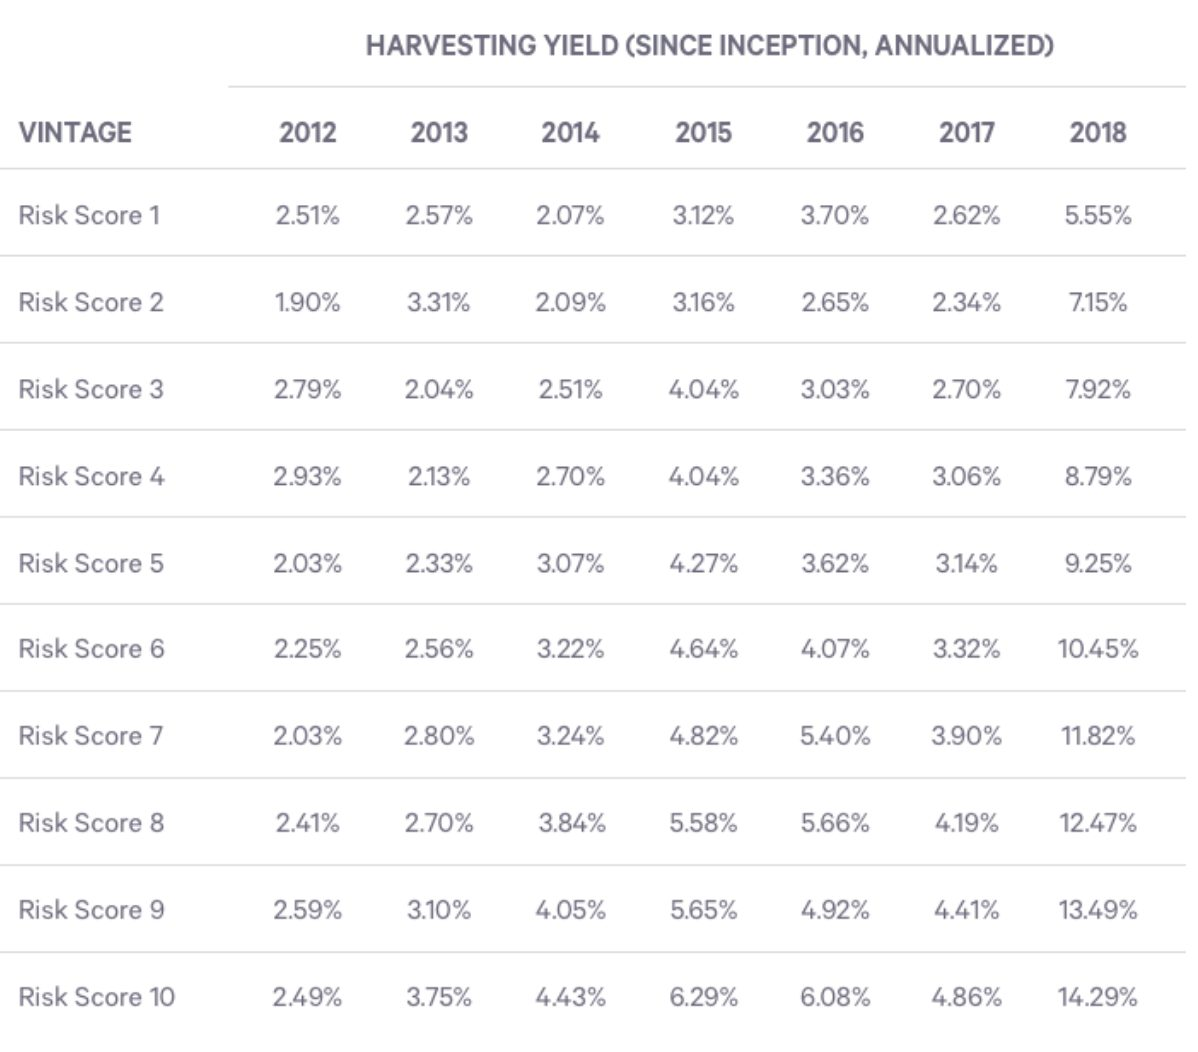 Wealthfront Tax Loss Harvesting Yield Table